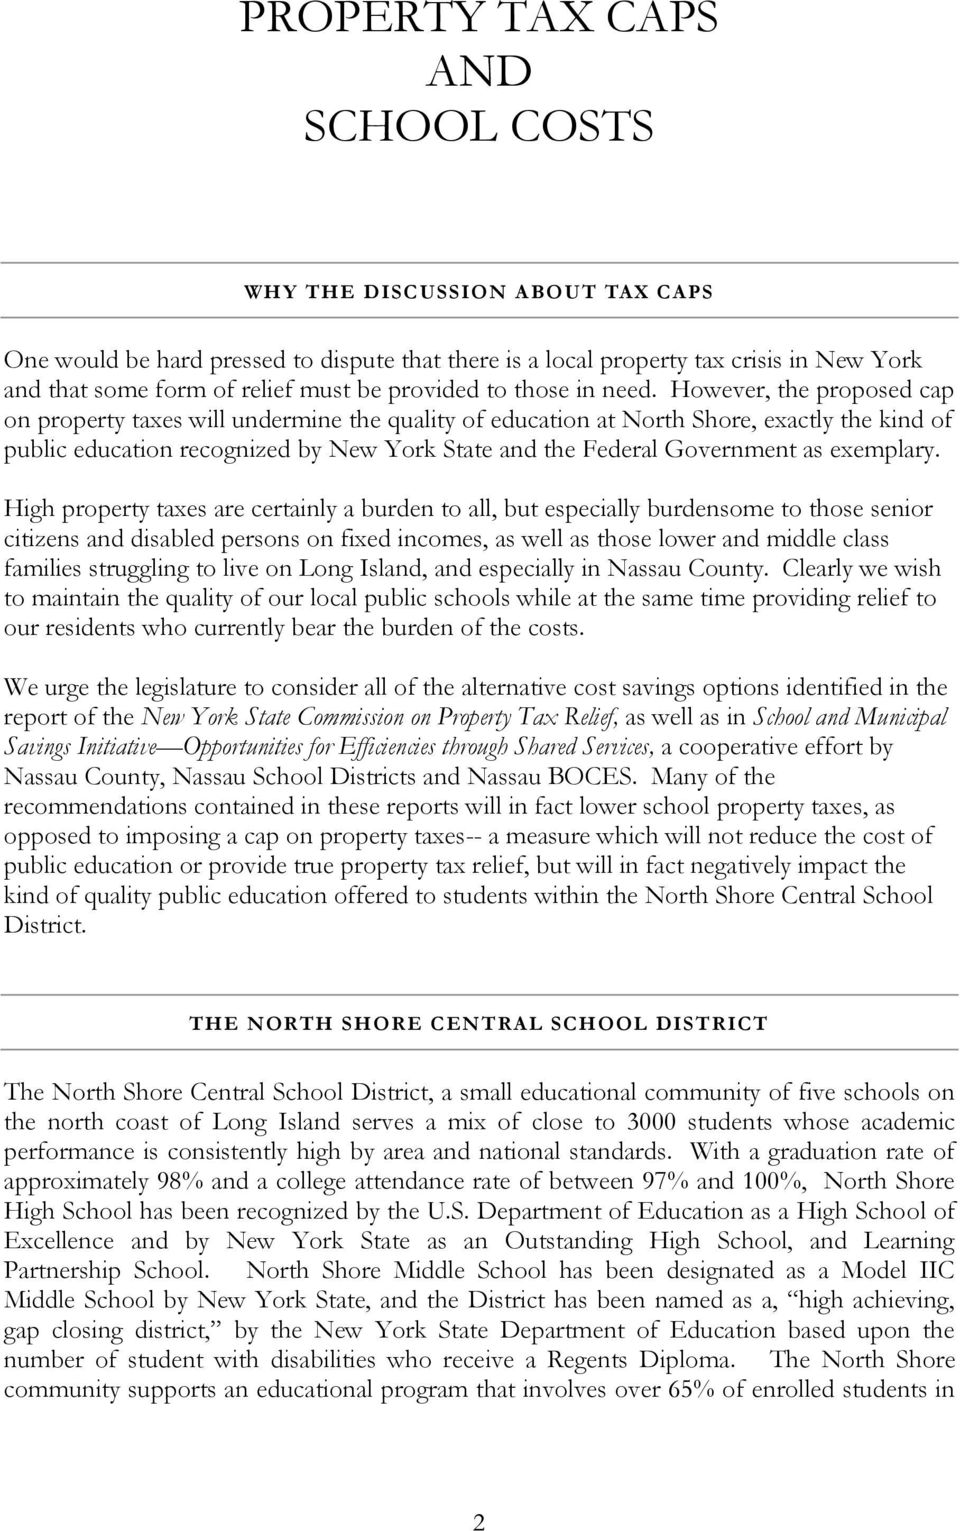 However, the proposed cap on property taxes will undermine the quality of education at North Shore, exactly the kind of public education recognized by New York State and the Federal Government as